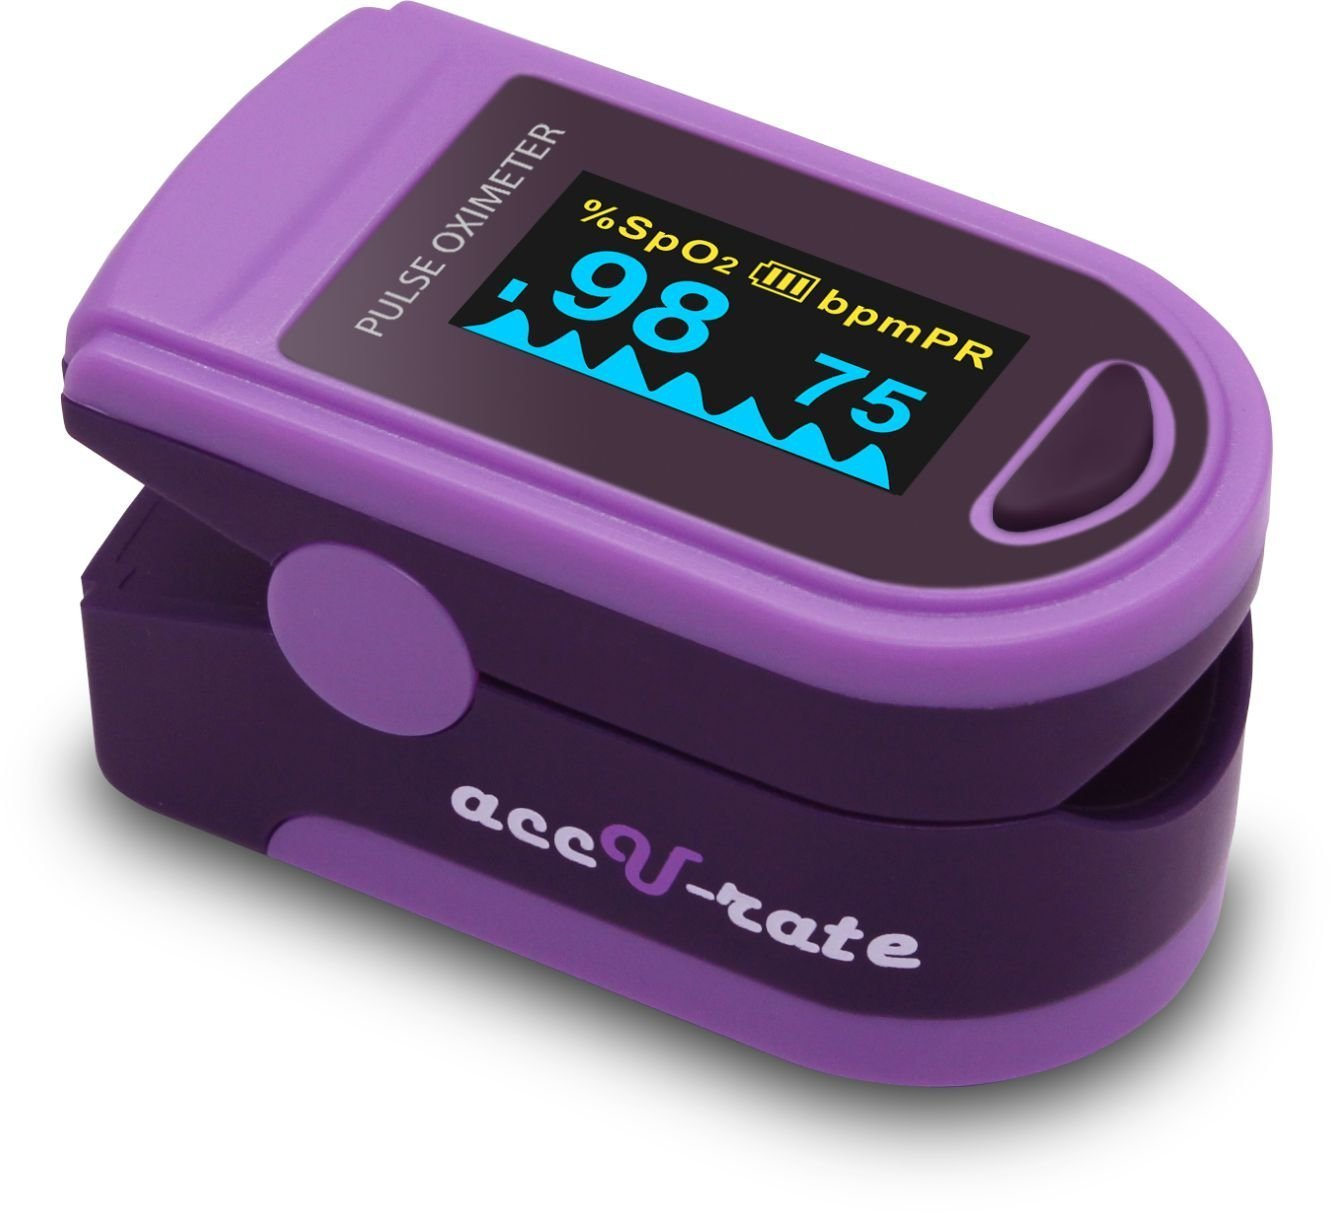 Zacurate Pro Series 500D Deluxe Fingertip Pulse Oximeter Blood Oxygen Saturation Monitor with silicon cover, batteries and lanyard, Royal Purple